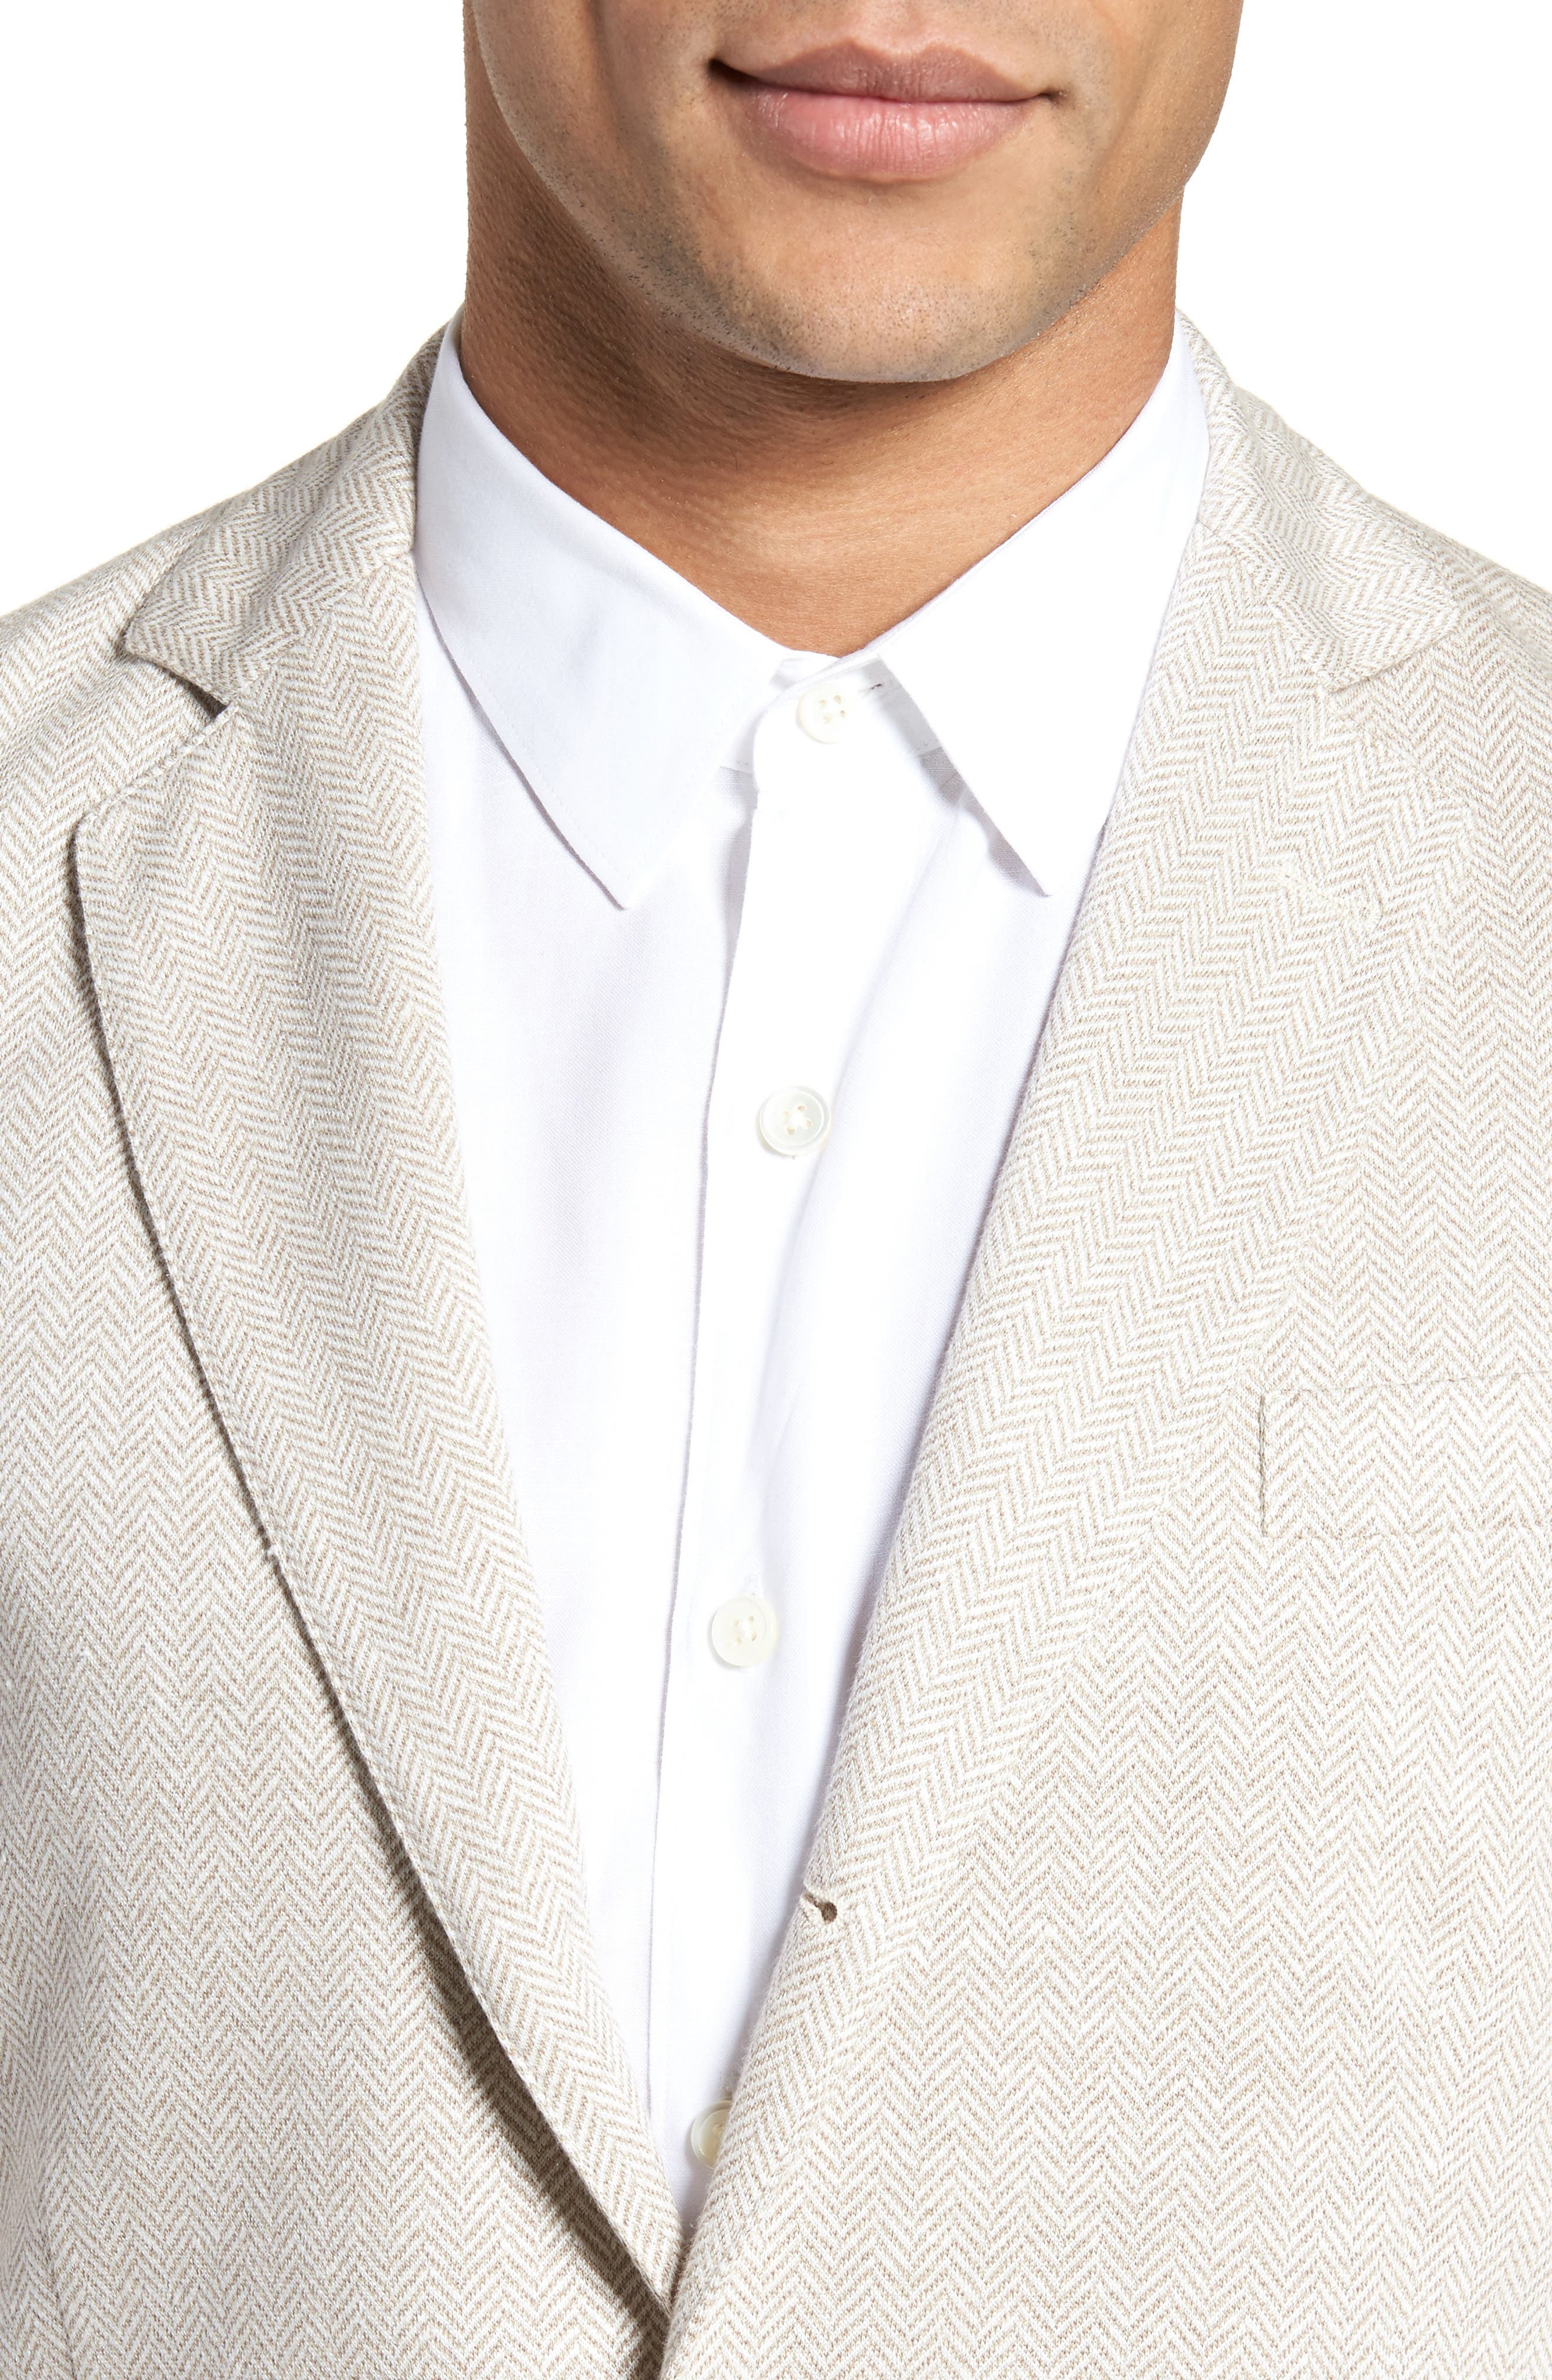 Trim Fit Herringbone Linen & Cotton Jacket,                             Alternate thumbnail 4, color,                             Sand